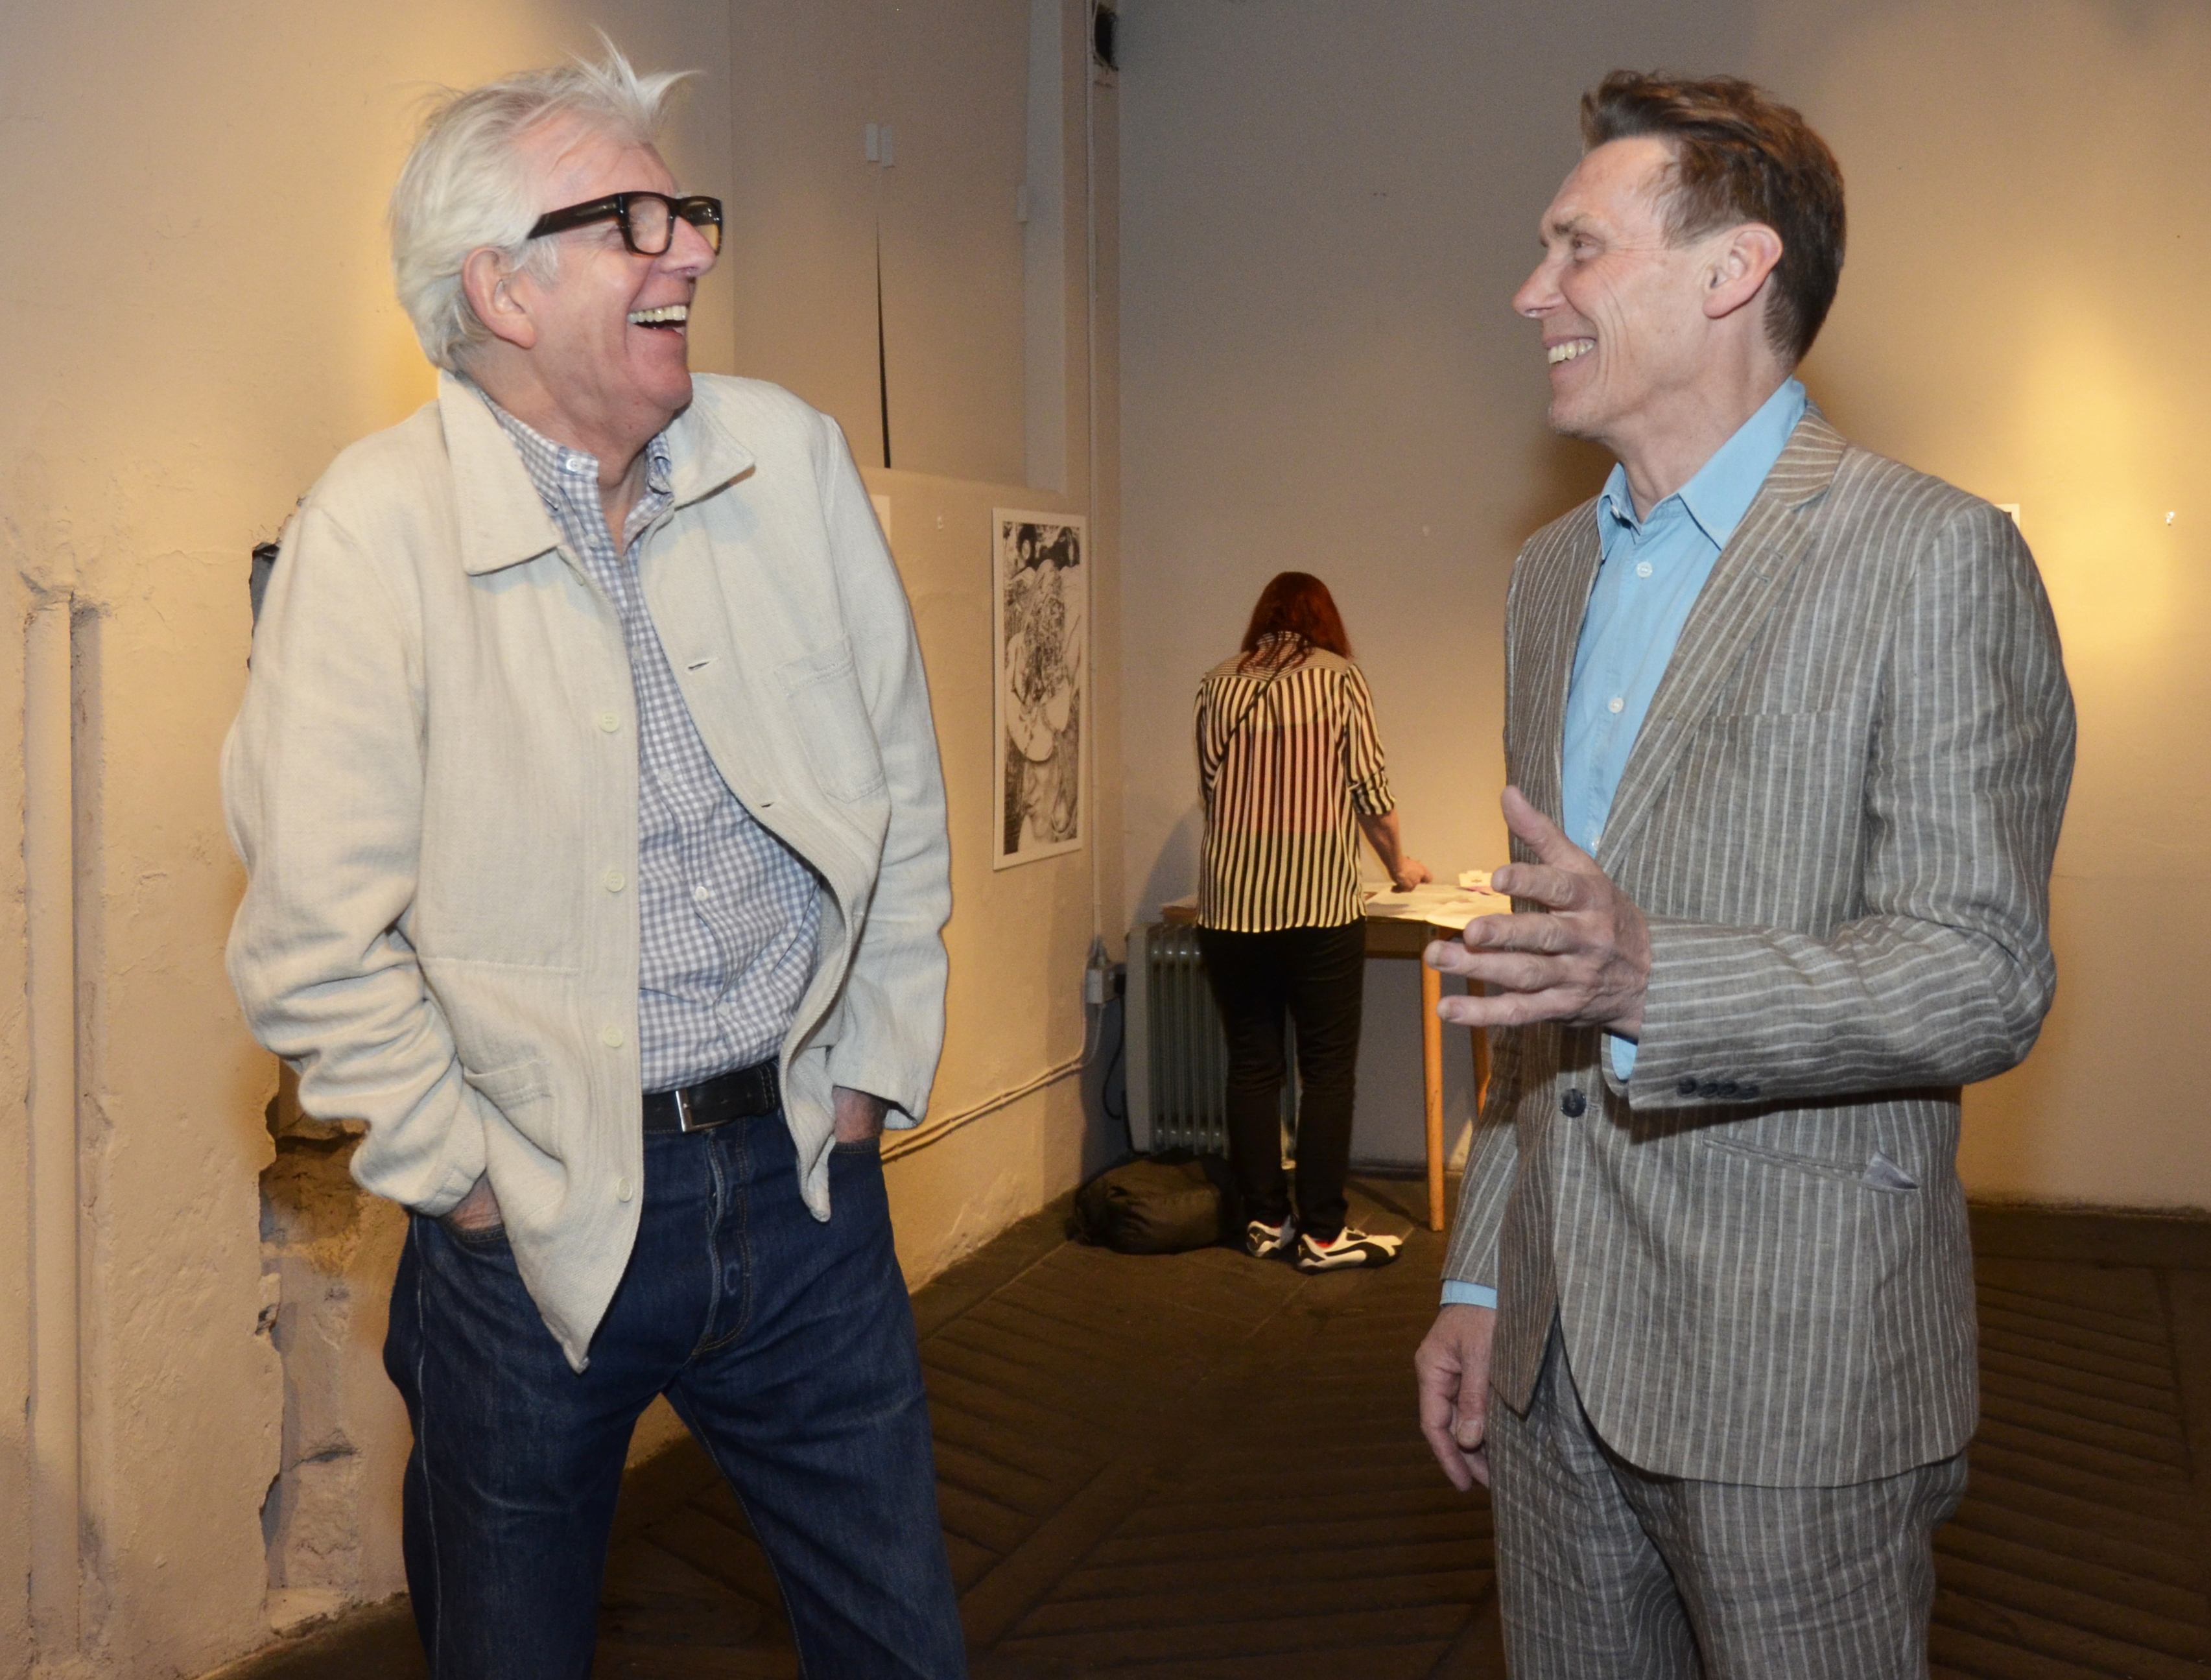 Nick Lowe and William chatting